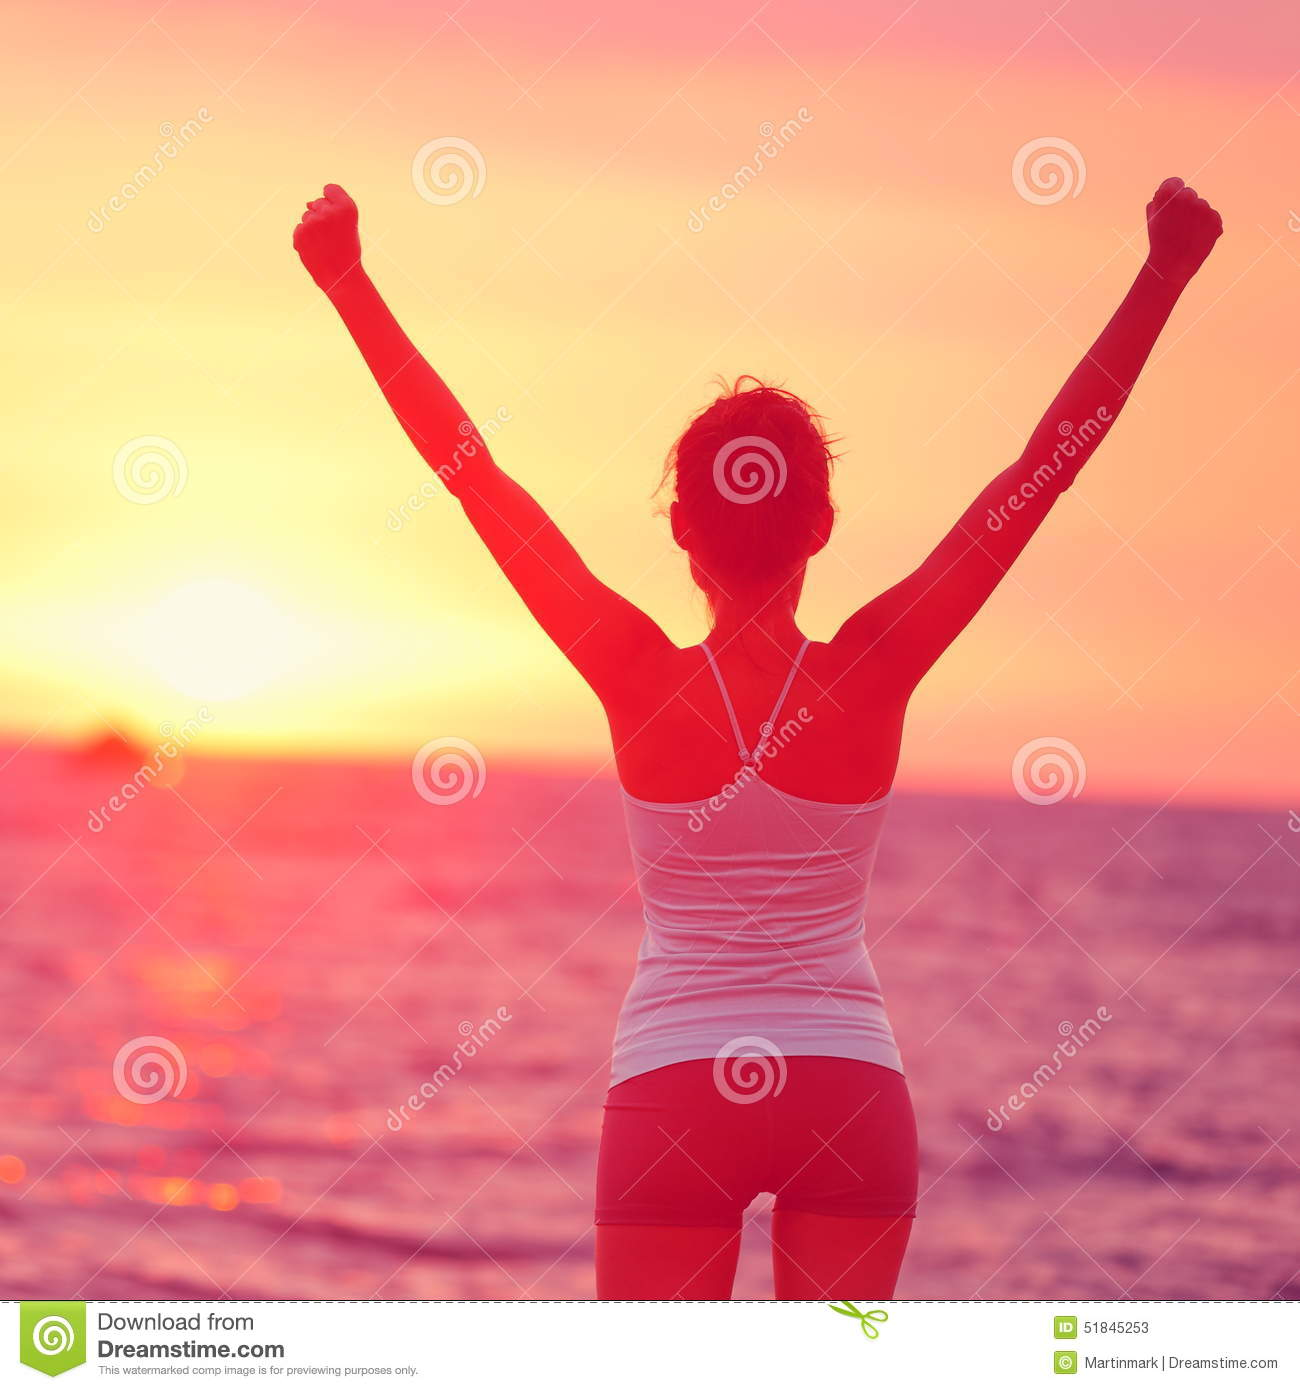 Life achievement - happy woman arms up in success